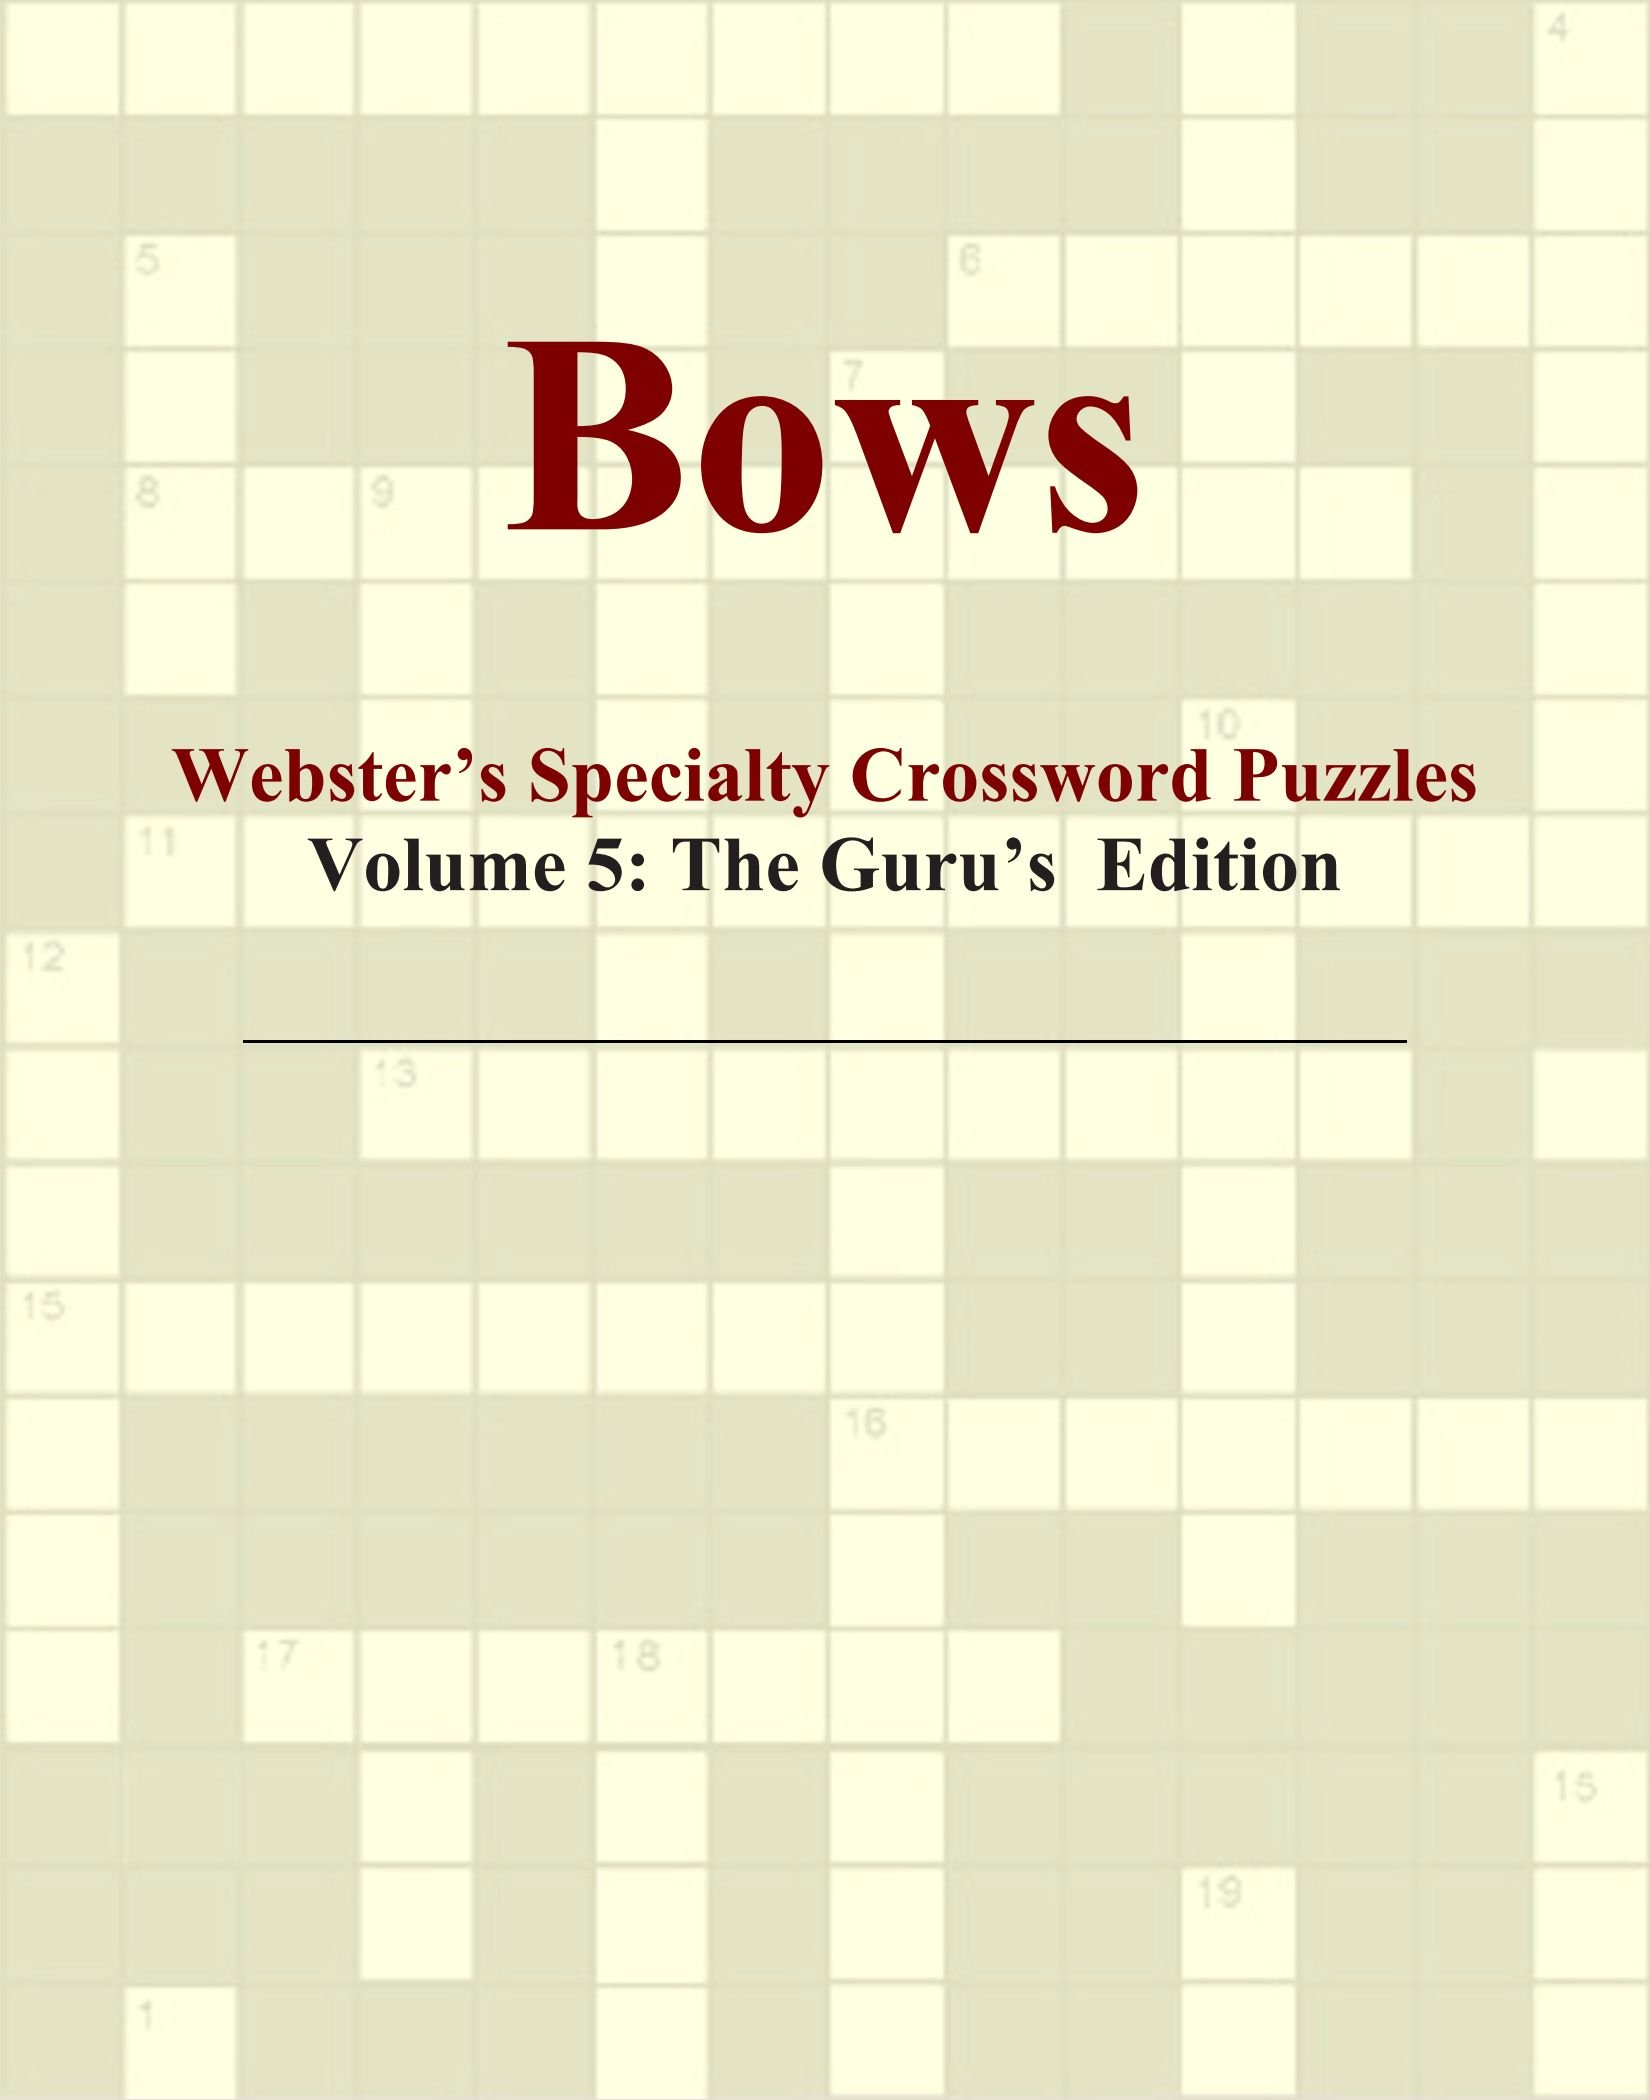 Download Bows - Webster's Specialty Crossword Puzzles, Volume 5: The Guru's Edition PDF